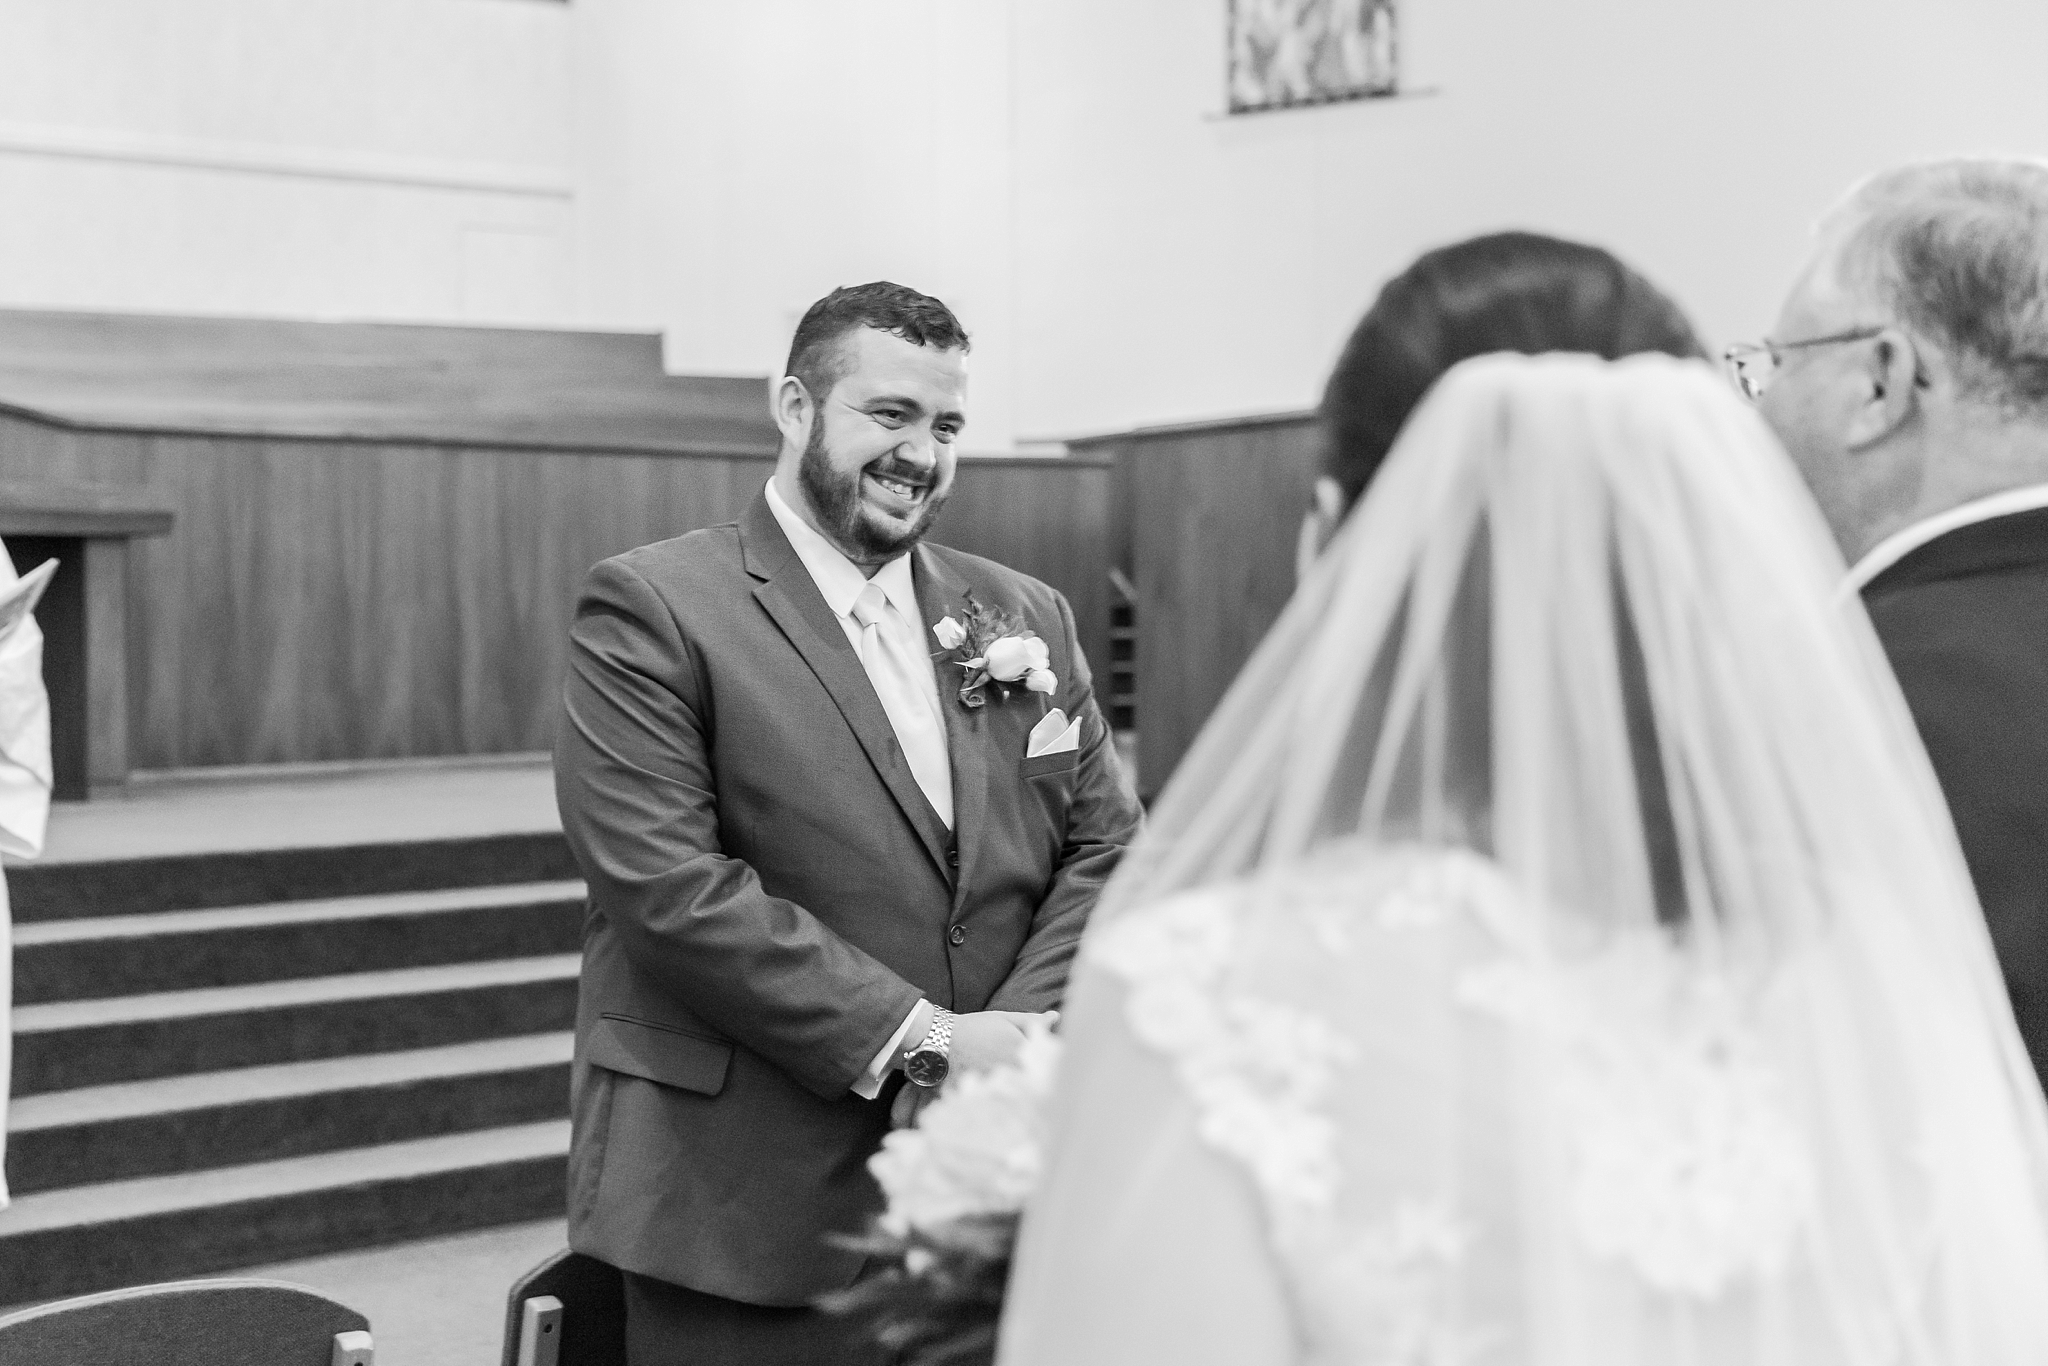 emotional-laid-back-romantic-wedding-photos-at-adrian-college-herrick-chapel-in-adrian-michigan-by-courtney-carolyn-photography_0021.jpg